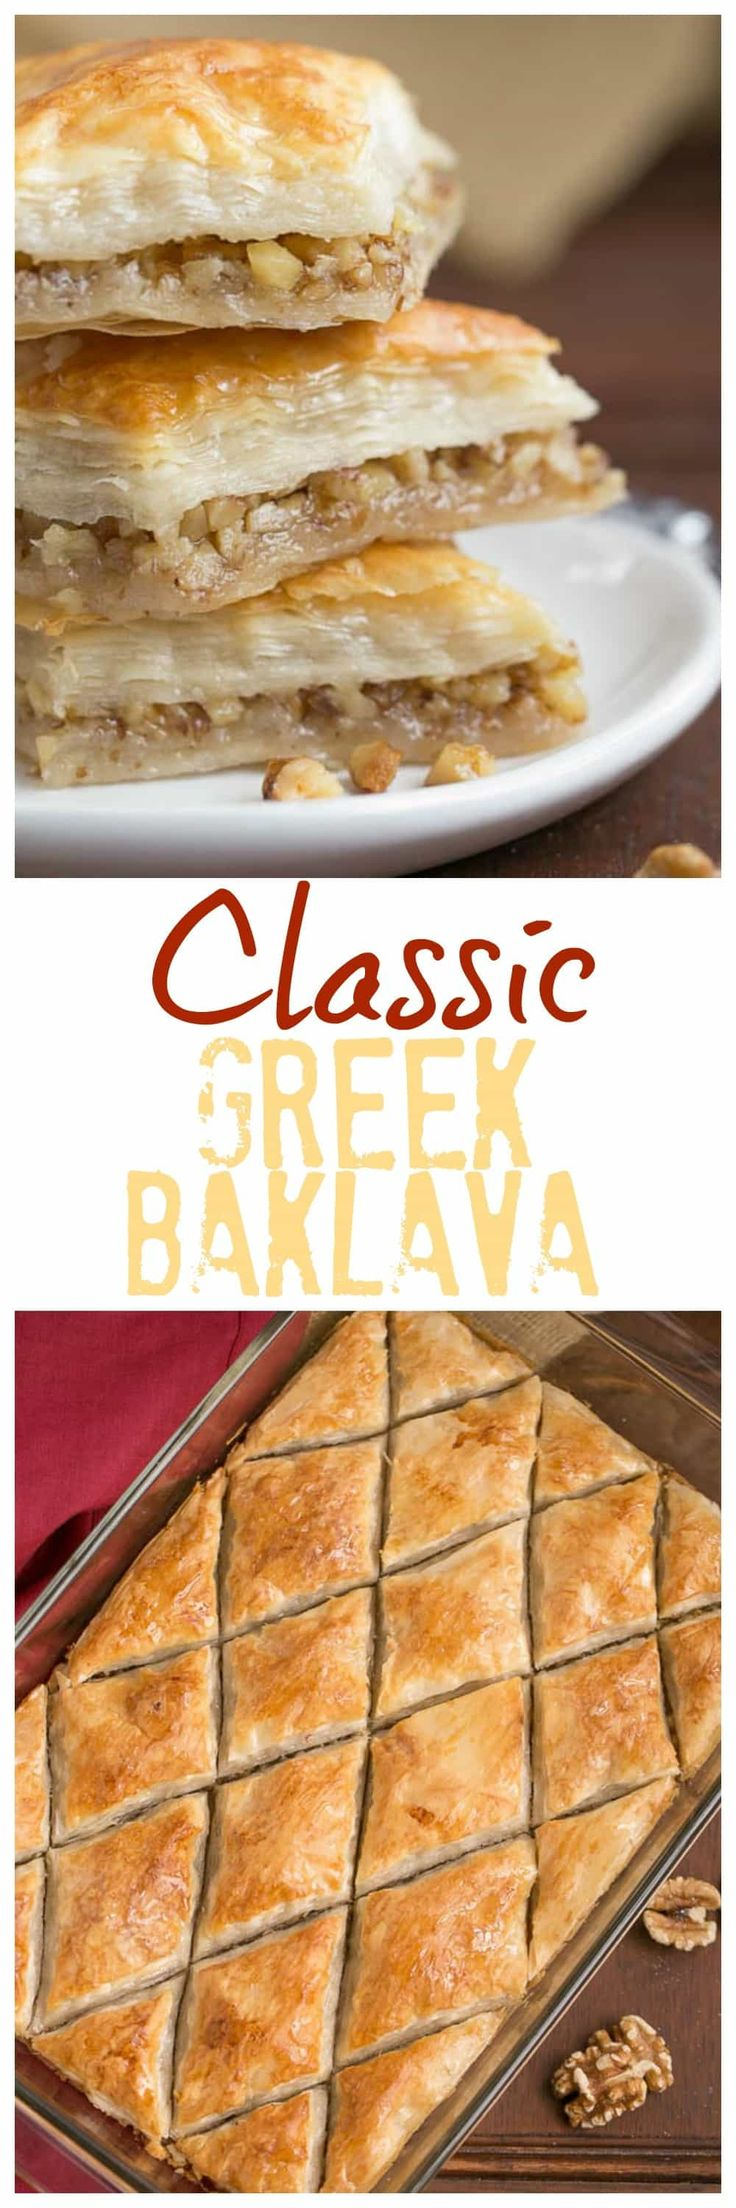 Gretchen's Classic Greek Baklava | My mom's baklava with layers of buttery filo & a walnut filling doused with orange blossom water kissed sugar syrup @lizzydo